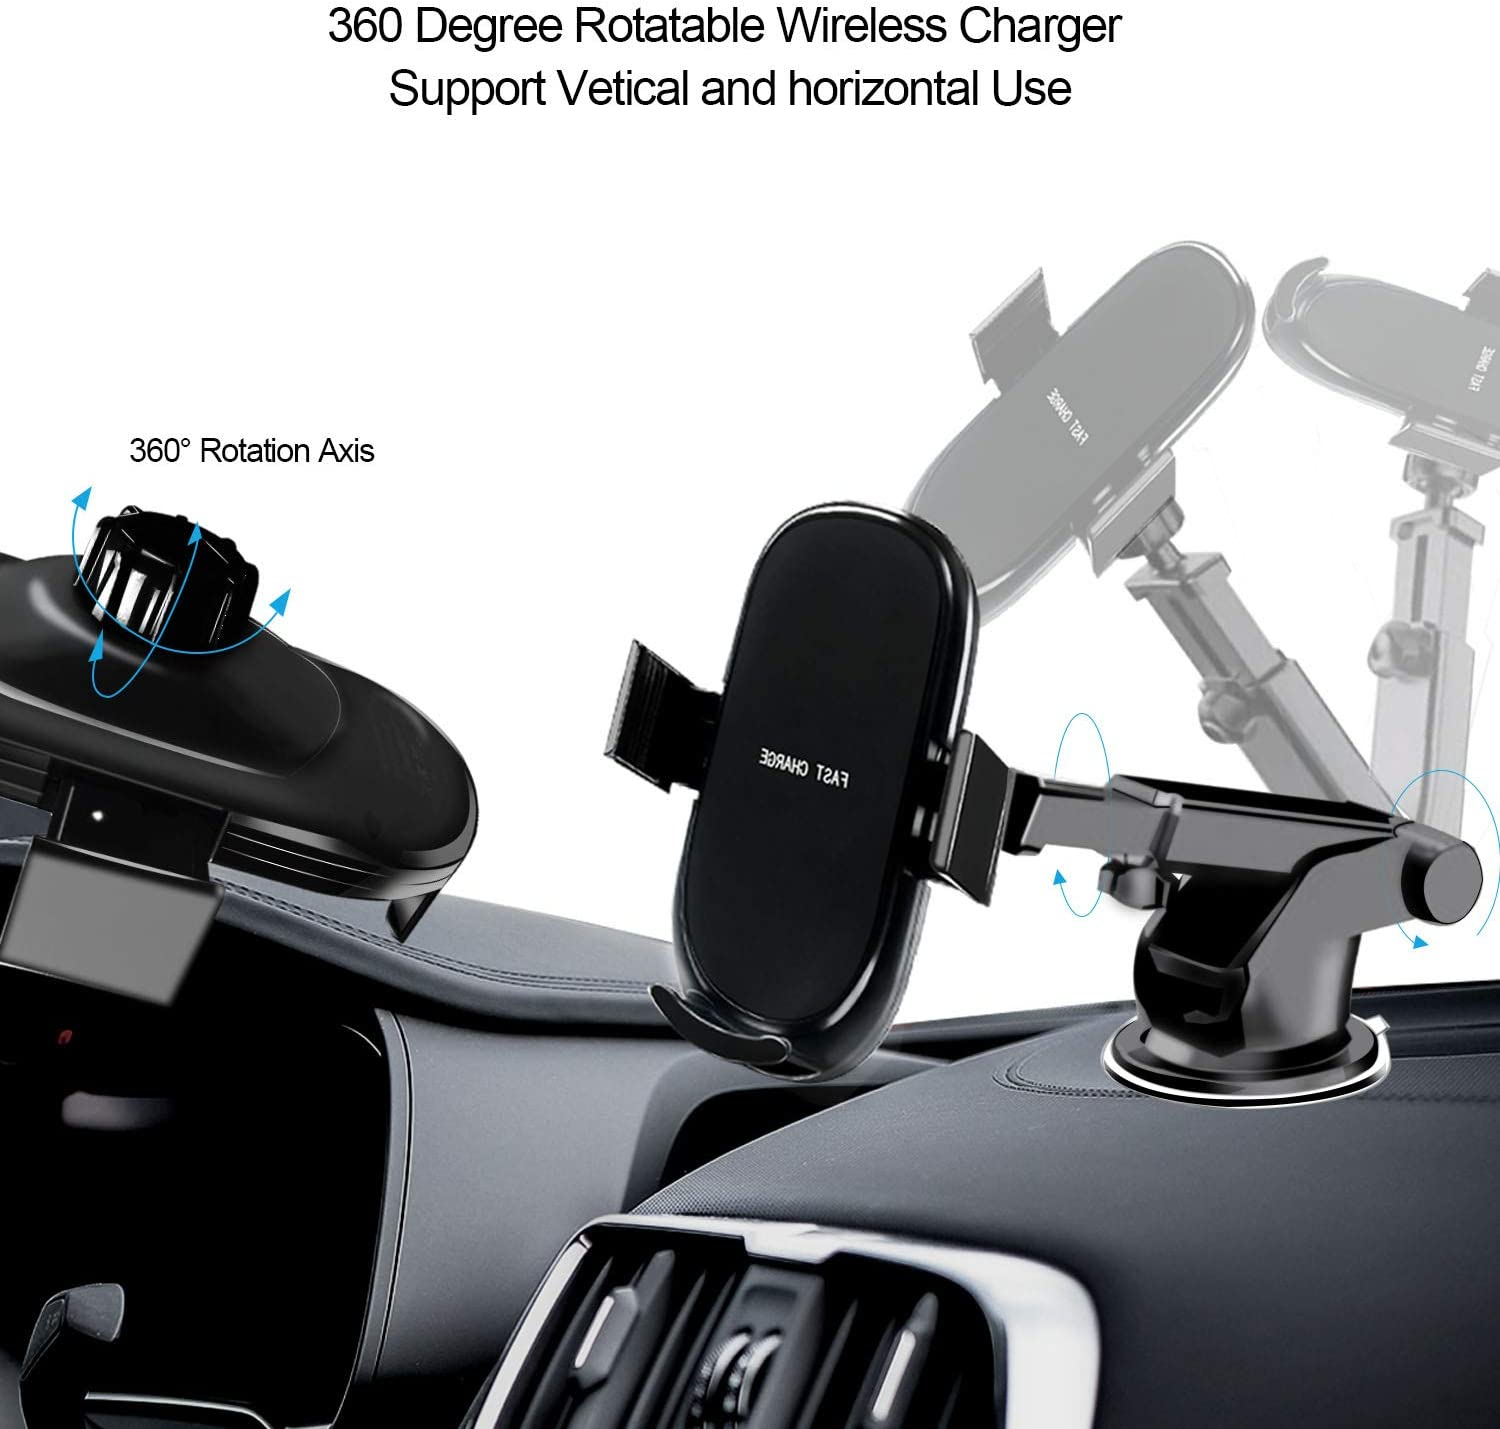 Car Wireless Charger Mount with USB Car Charger Adapter Qi Fast Charging Car Phone Holder Compatible with iPhone Xs Xs Max XR X 8 8 Plus Samsung Galaxy S10 S10 S9 S9 by Amerzam